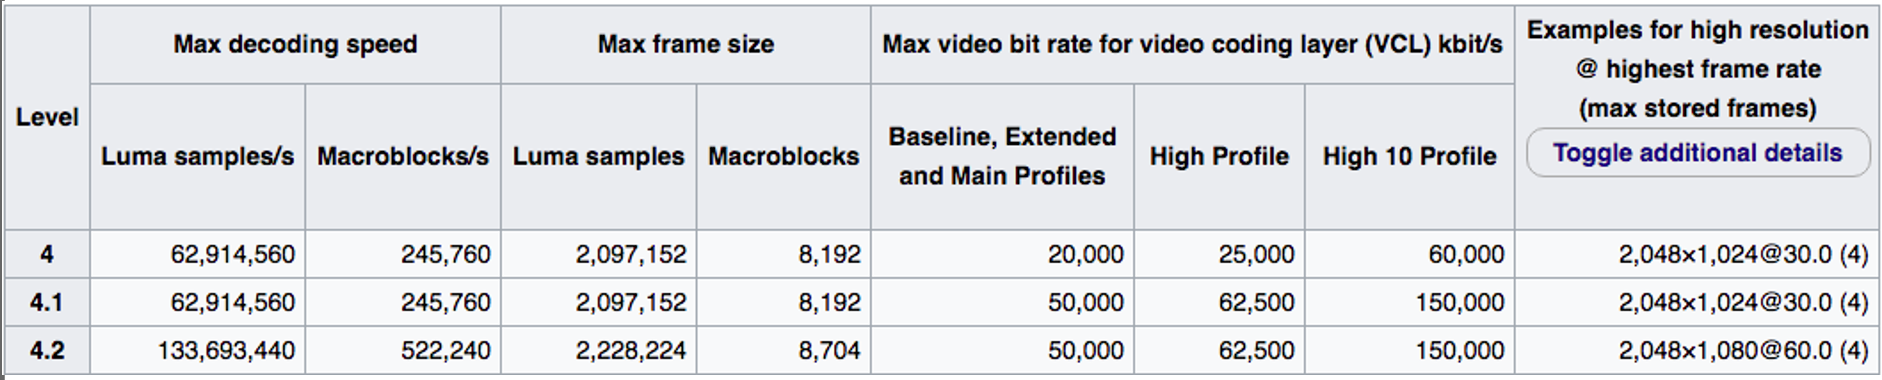 Levels may be critical when encoding H.264 video